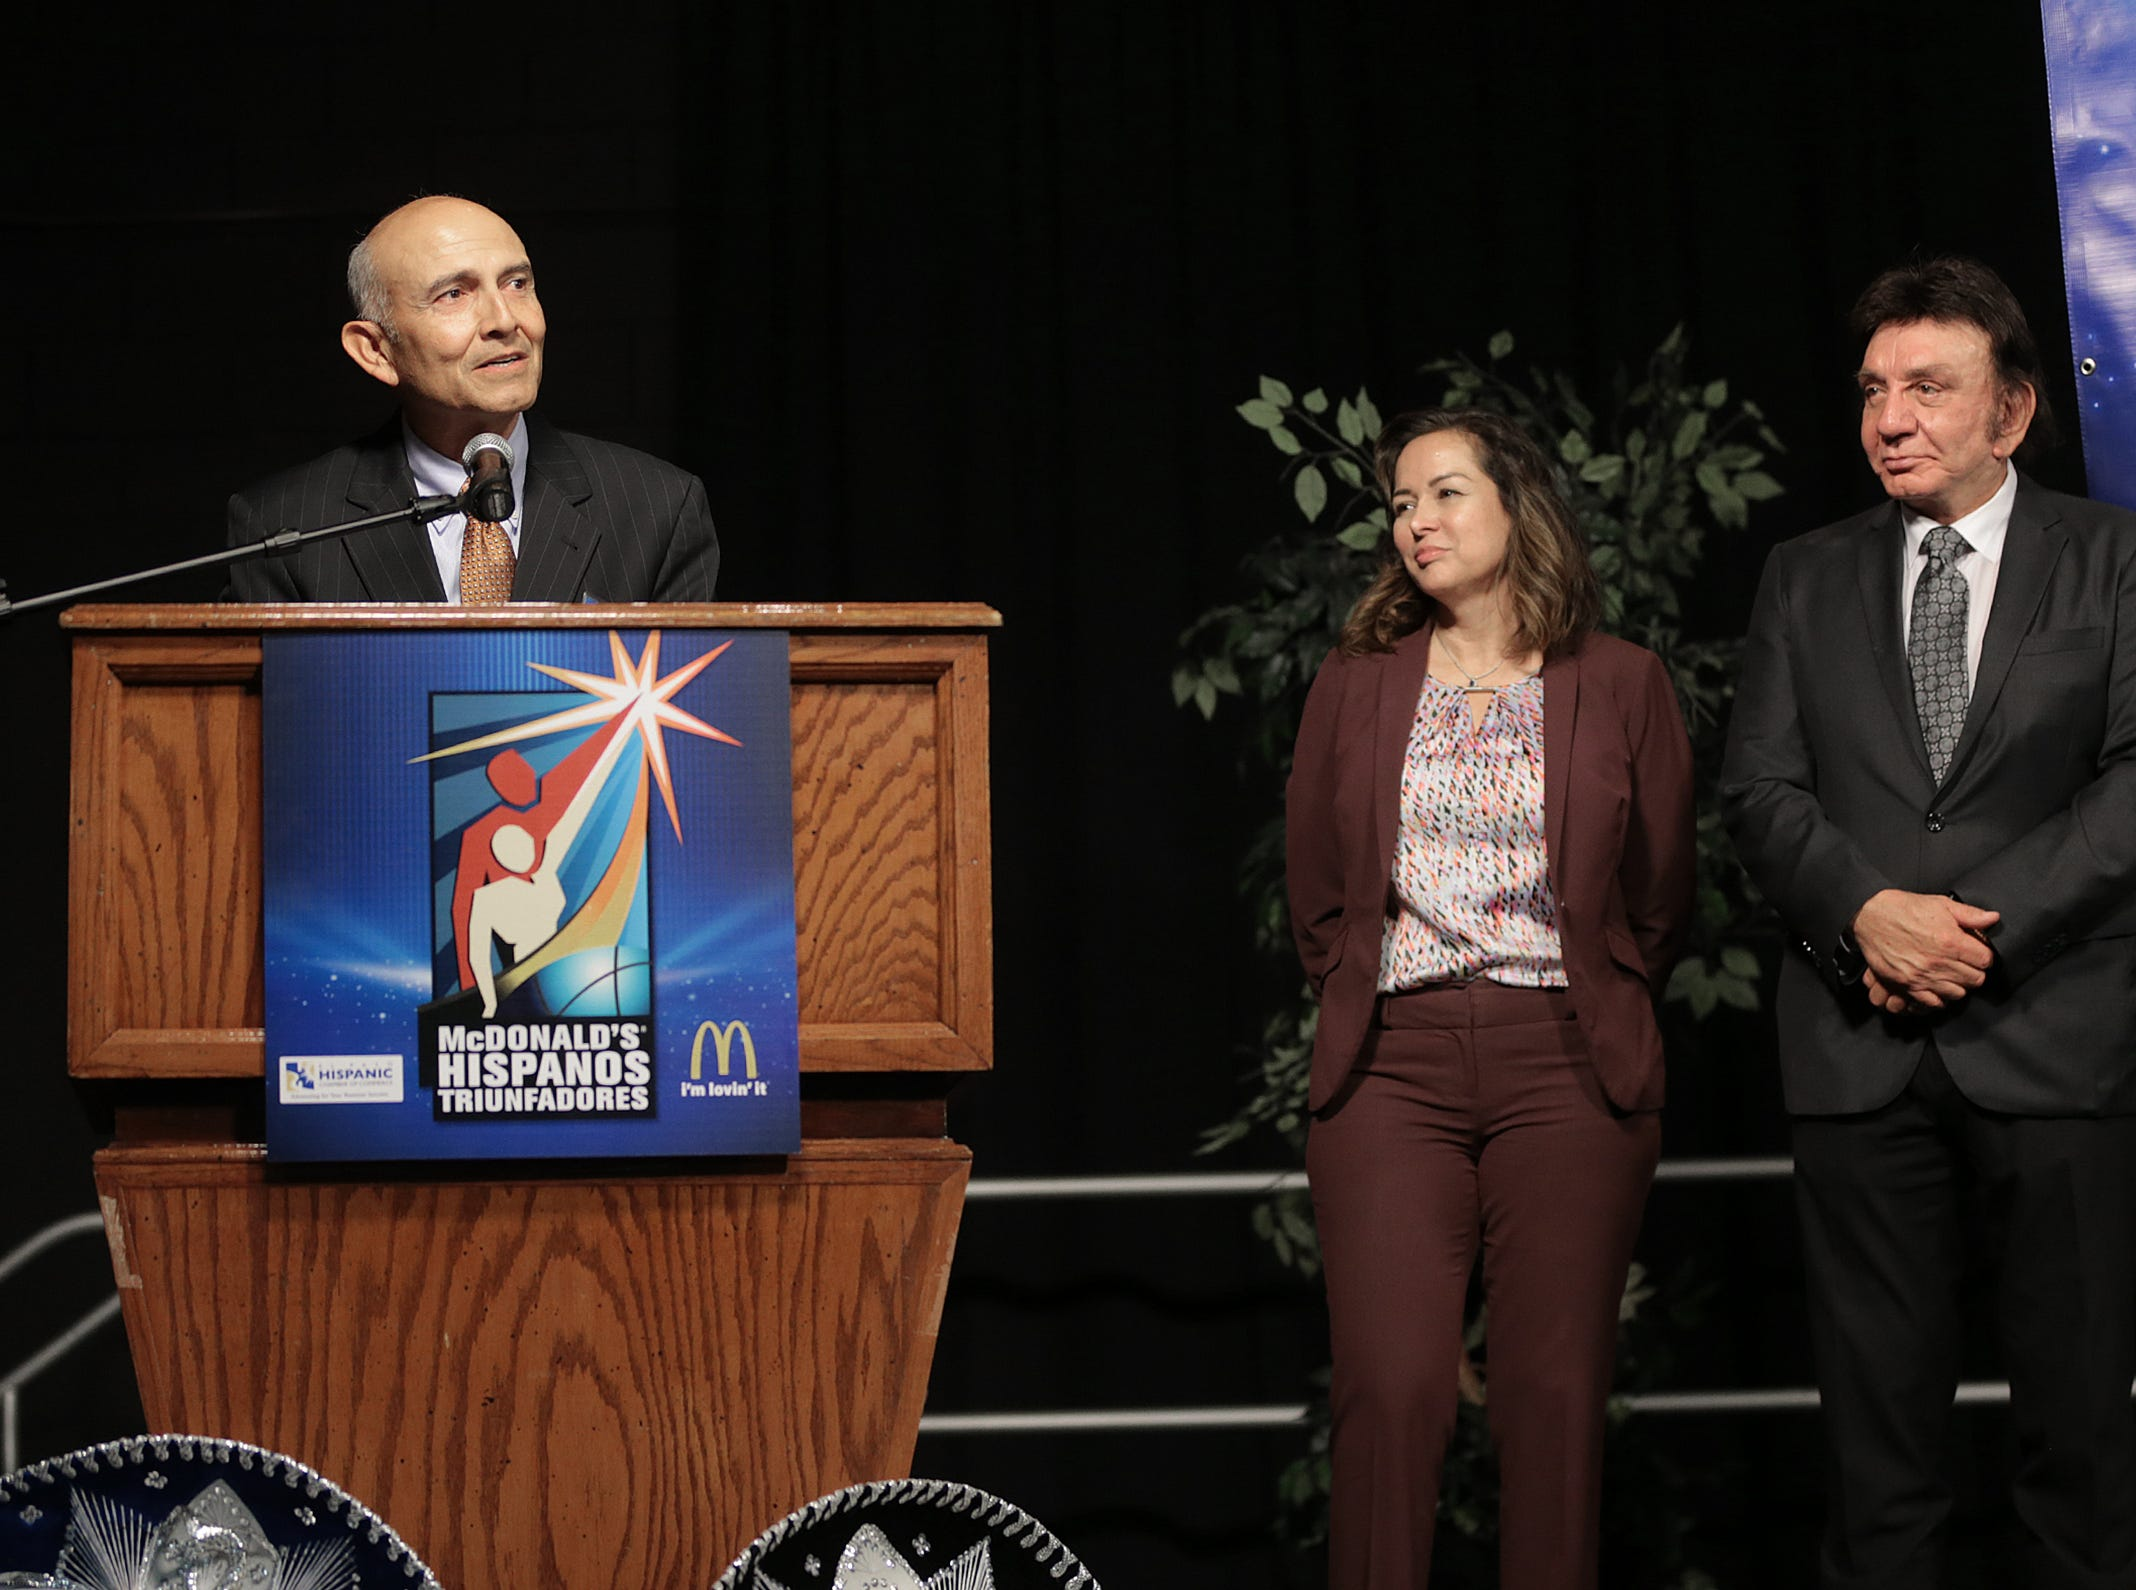 Judge Phillip Martinez speaks after accepting his Hispanos Triunfadores Award Monday. Martinez has been a United States District Judge in the United States District Court since his appointment in 2002.